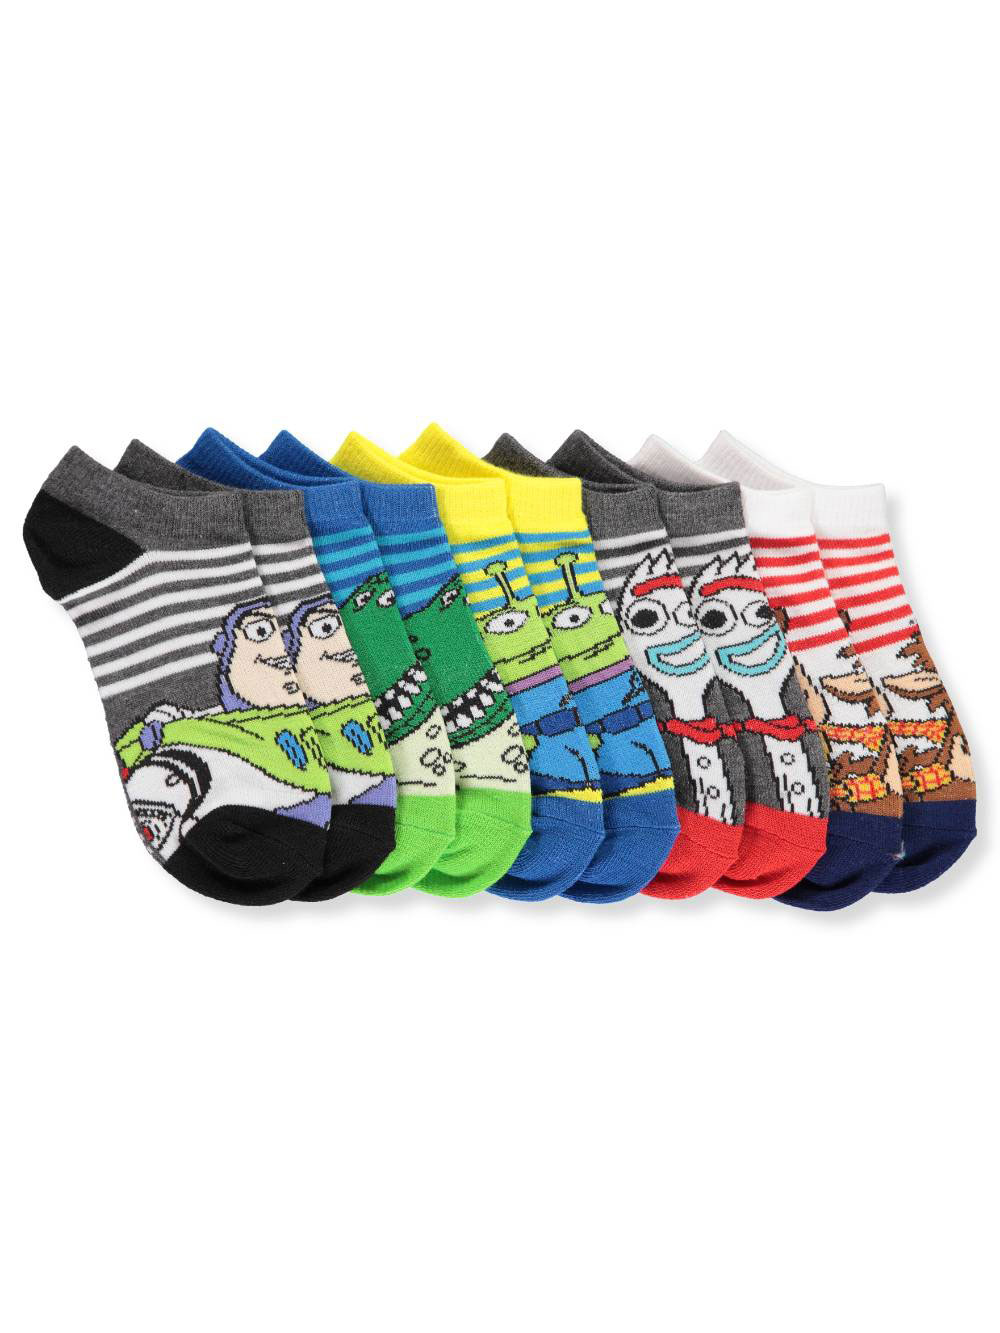 Cartoon Character Products 3 Pack Boys Toy Story Pants//Briefs Various Designs of Woody and Buzz